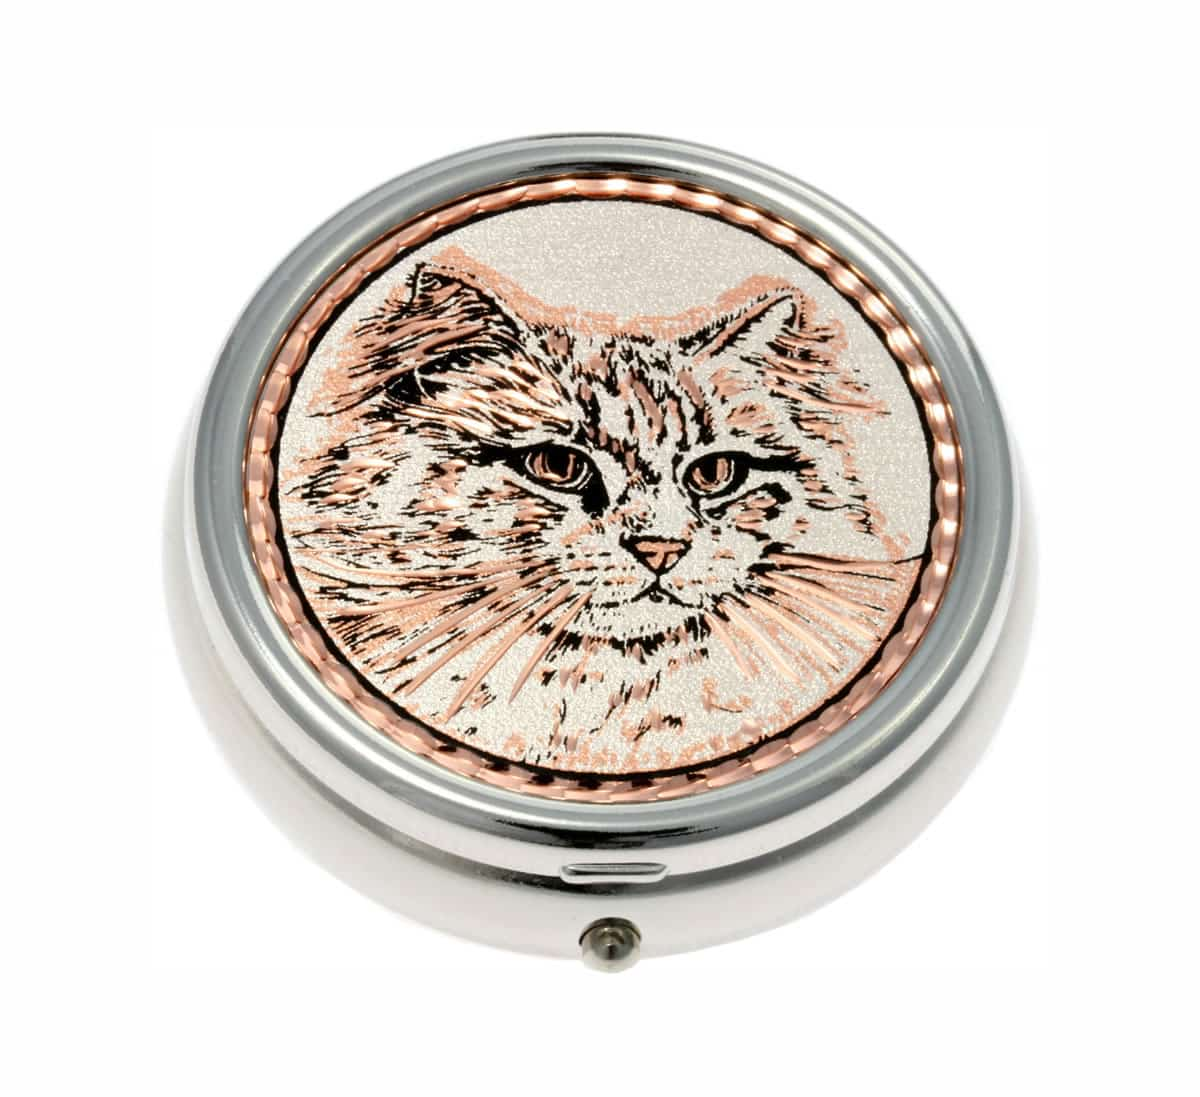 Buy Elegant White Persian Cat Pill Boxes, Special Handmade Gifts for Women